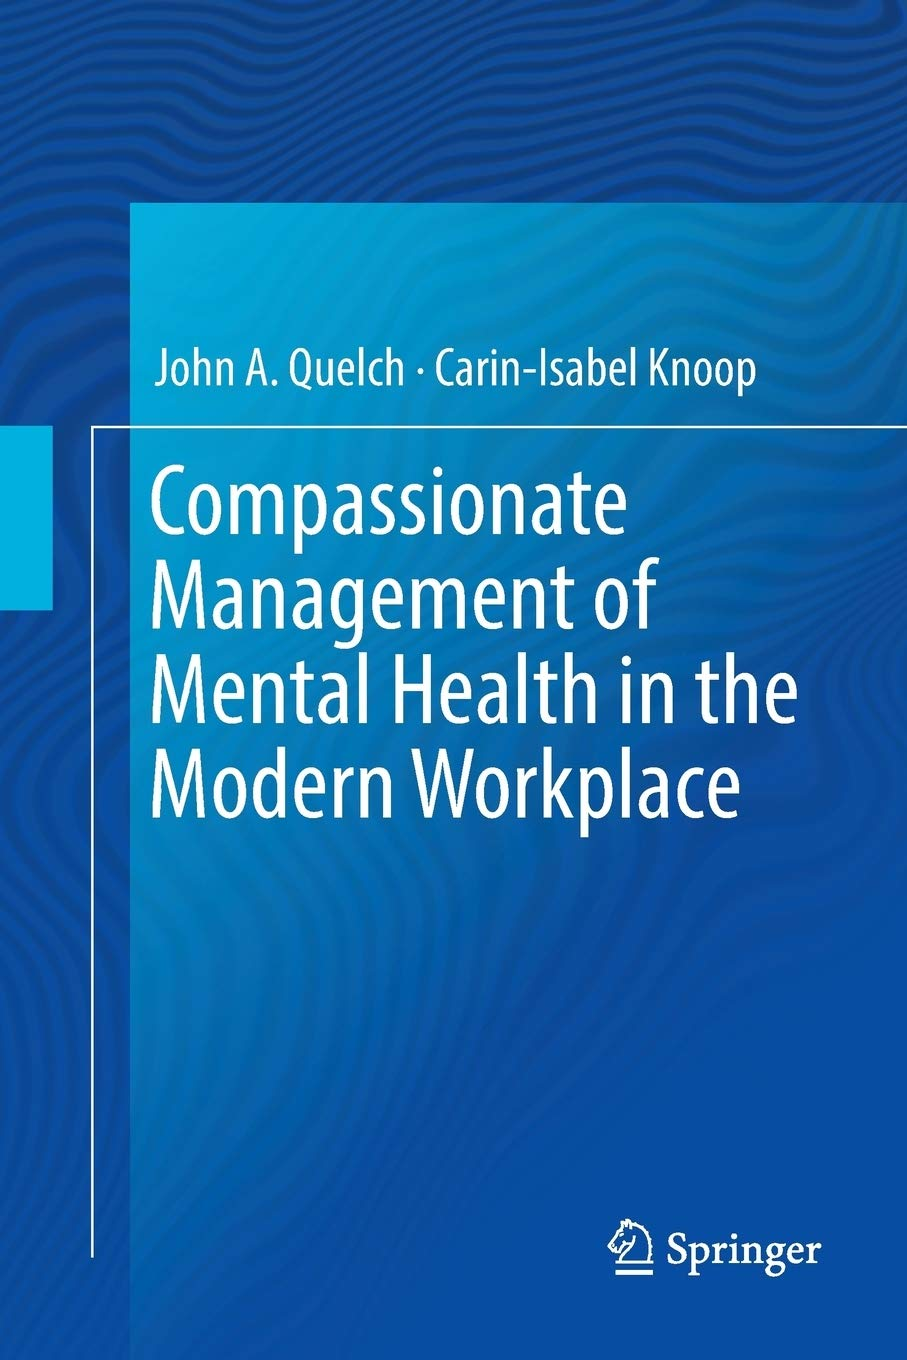 Image OfCompassionate Management Of Mental Health In The Modern Workplace